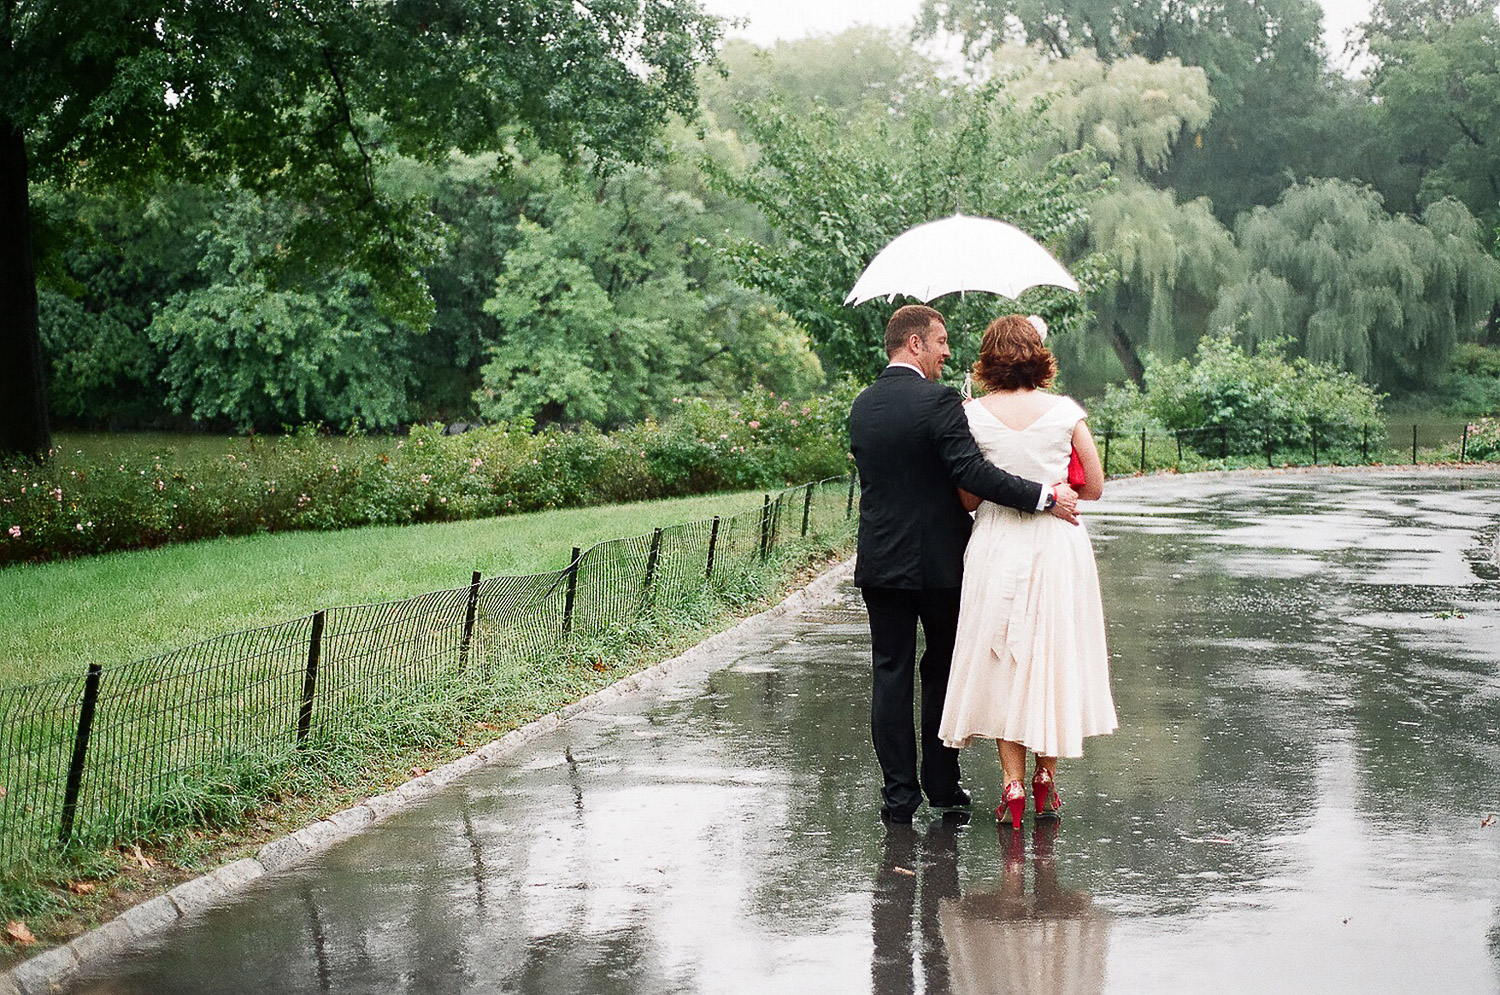 wedding elopement photos in the rain by wendy g photography